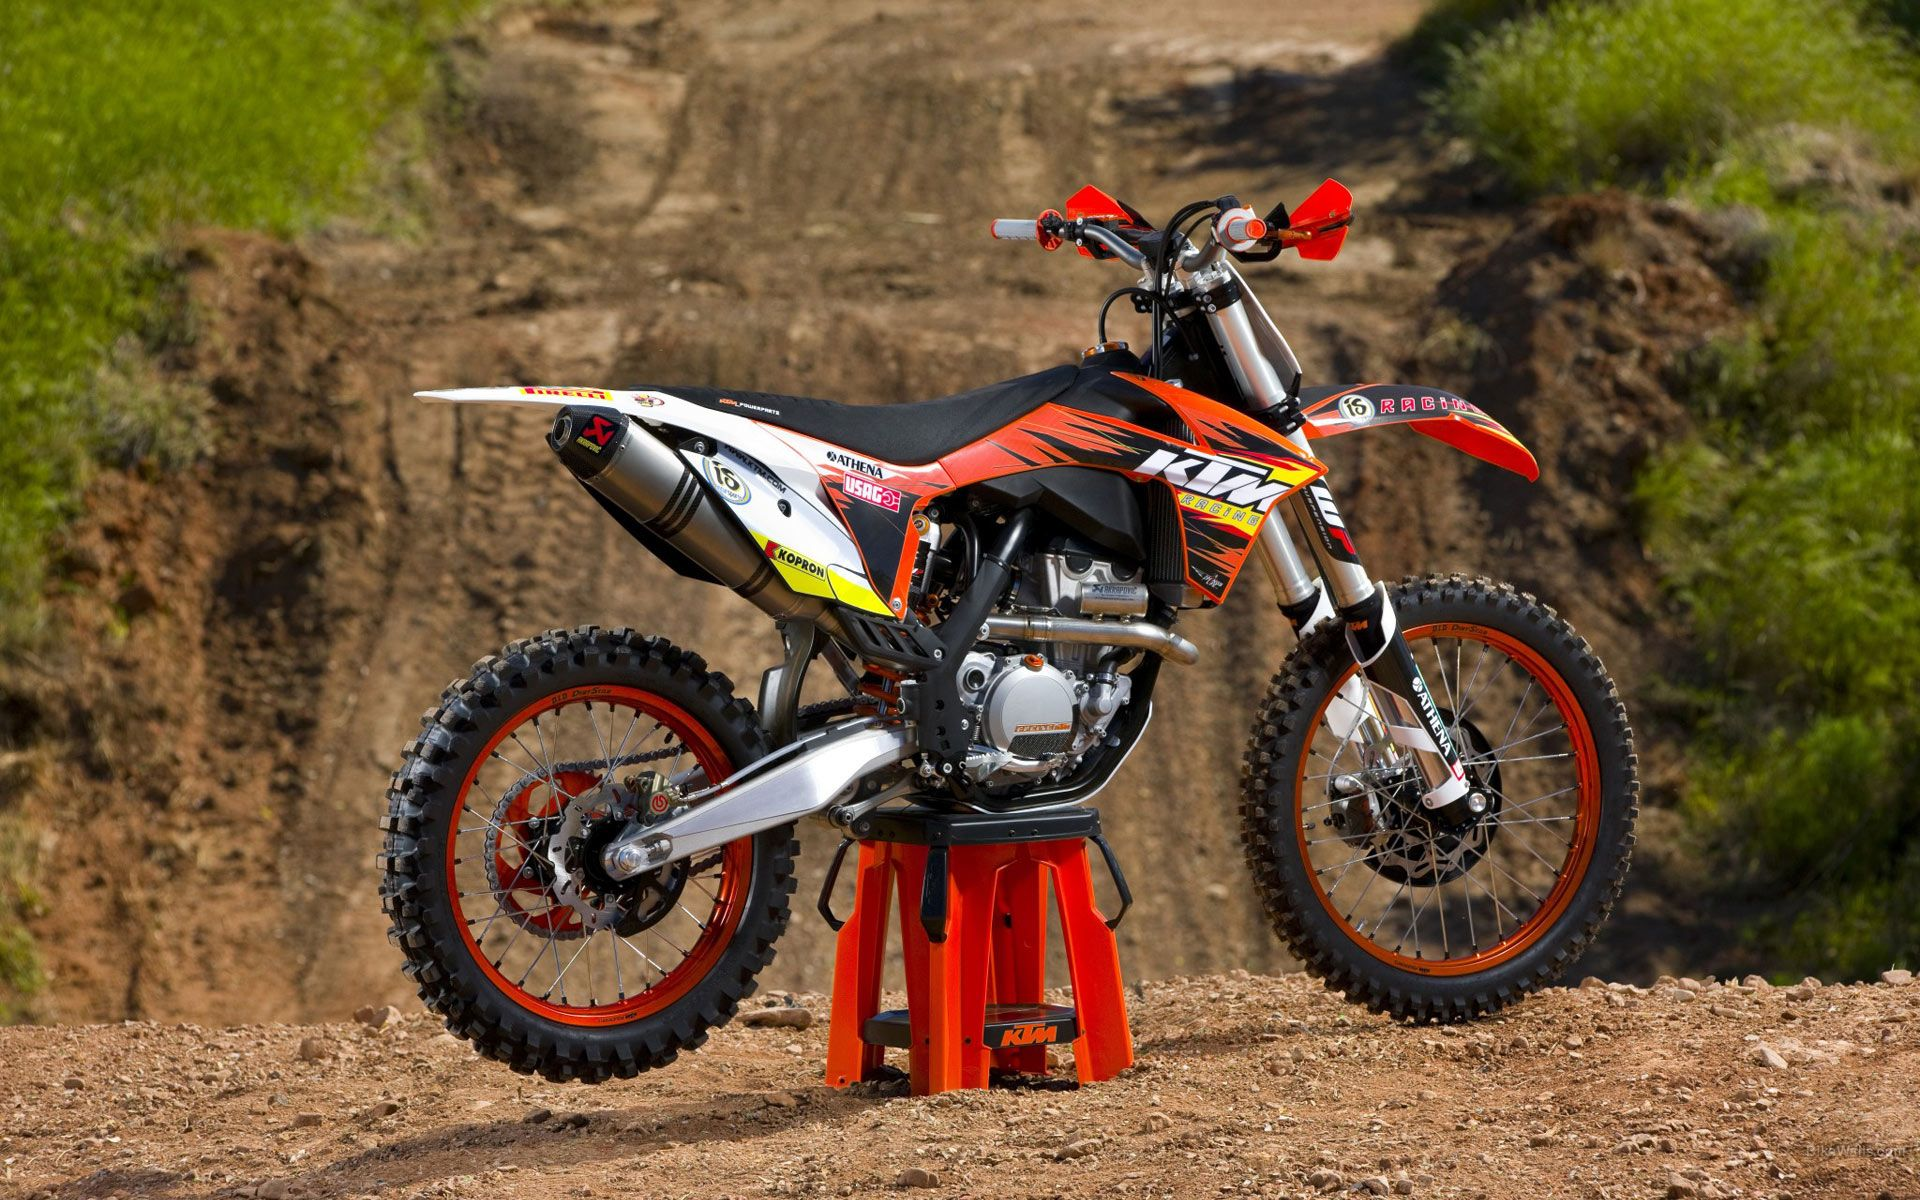 Wallpaper motocross ktm wallpapersafari - Moto crosse ktm ...